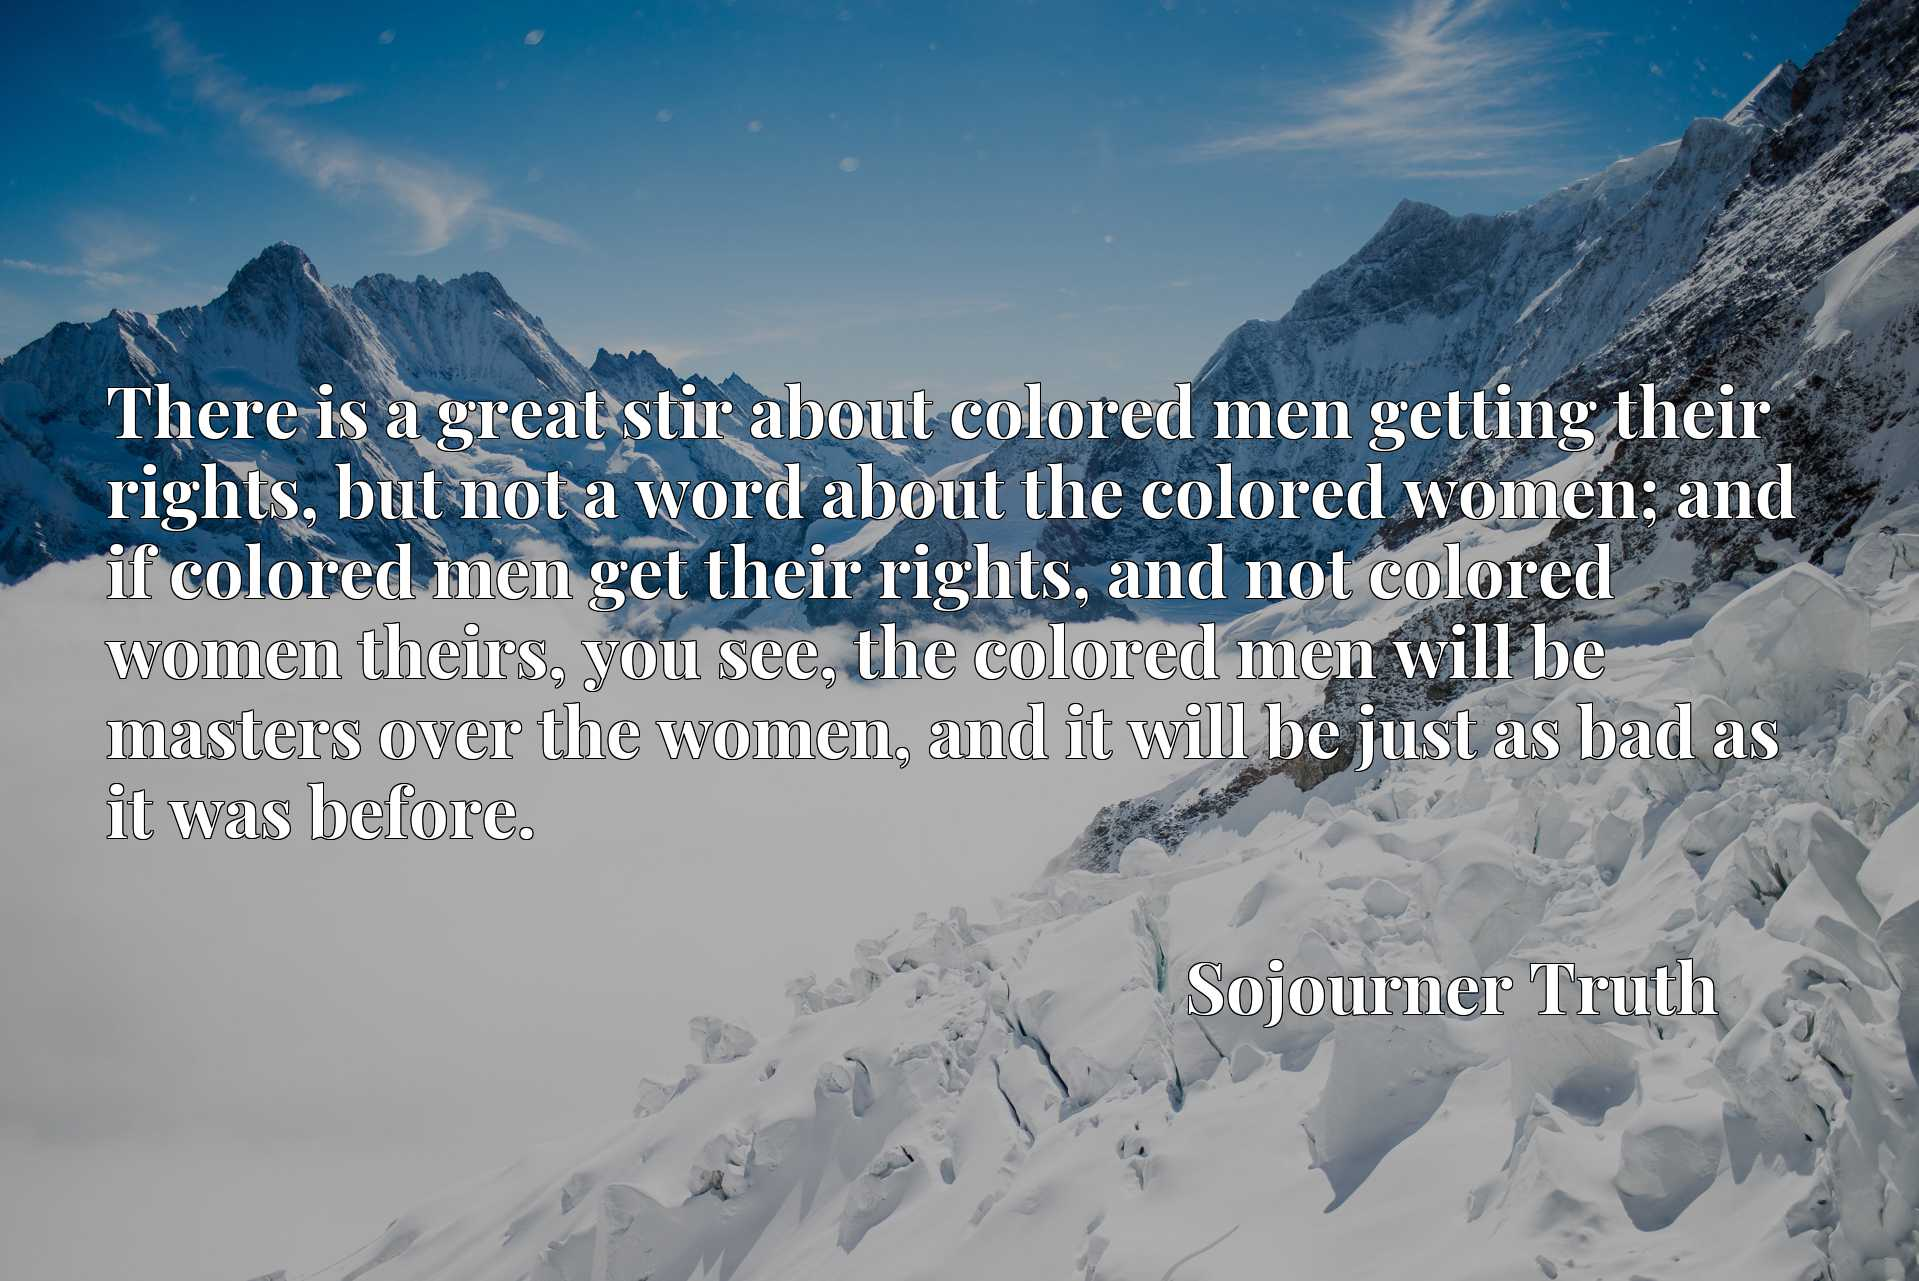 There is a great stir about colored men getting their rights, but not a word about the colored women; and if colored men get their rights, and not colored women theirs, you see, the colored men will be masters over the women, and it will be just as bad as it was before.